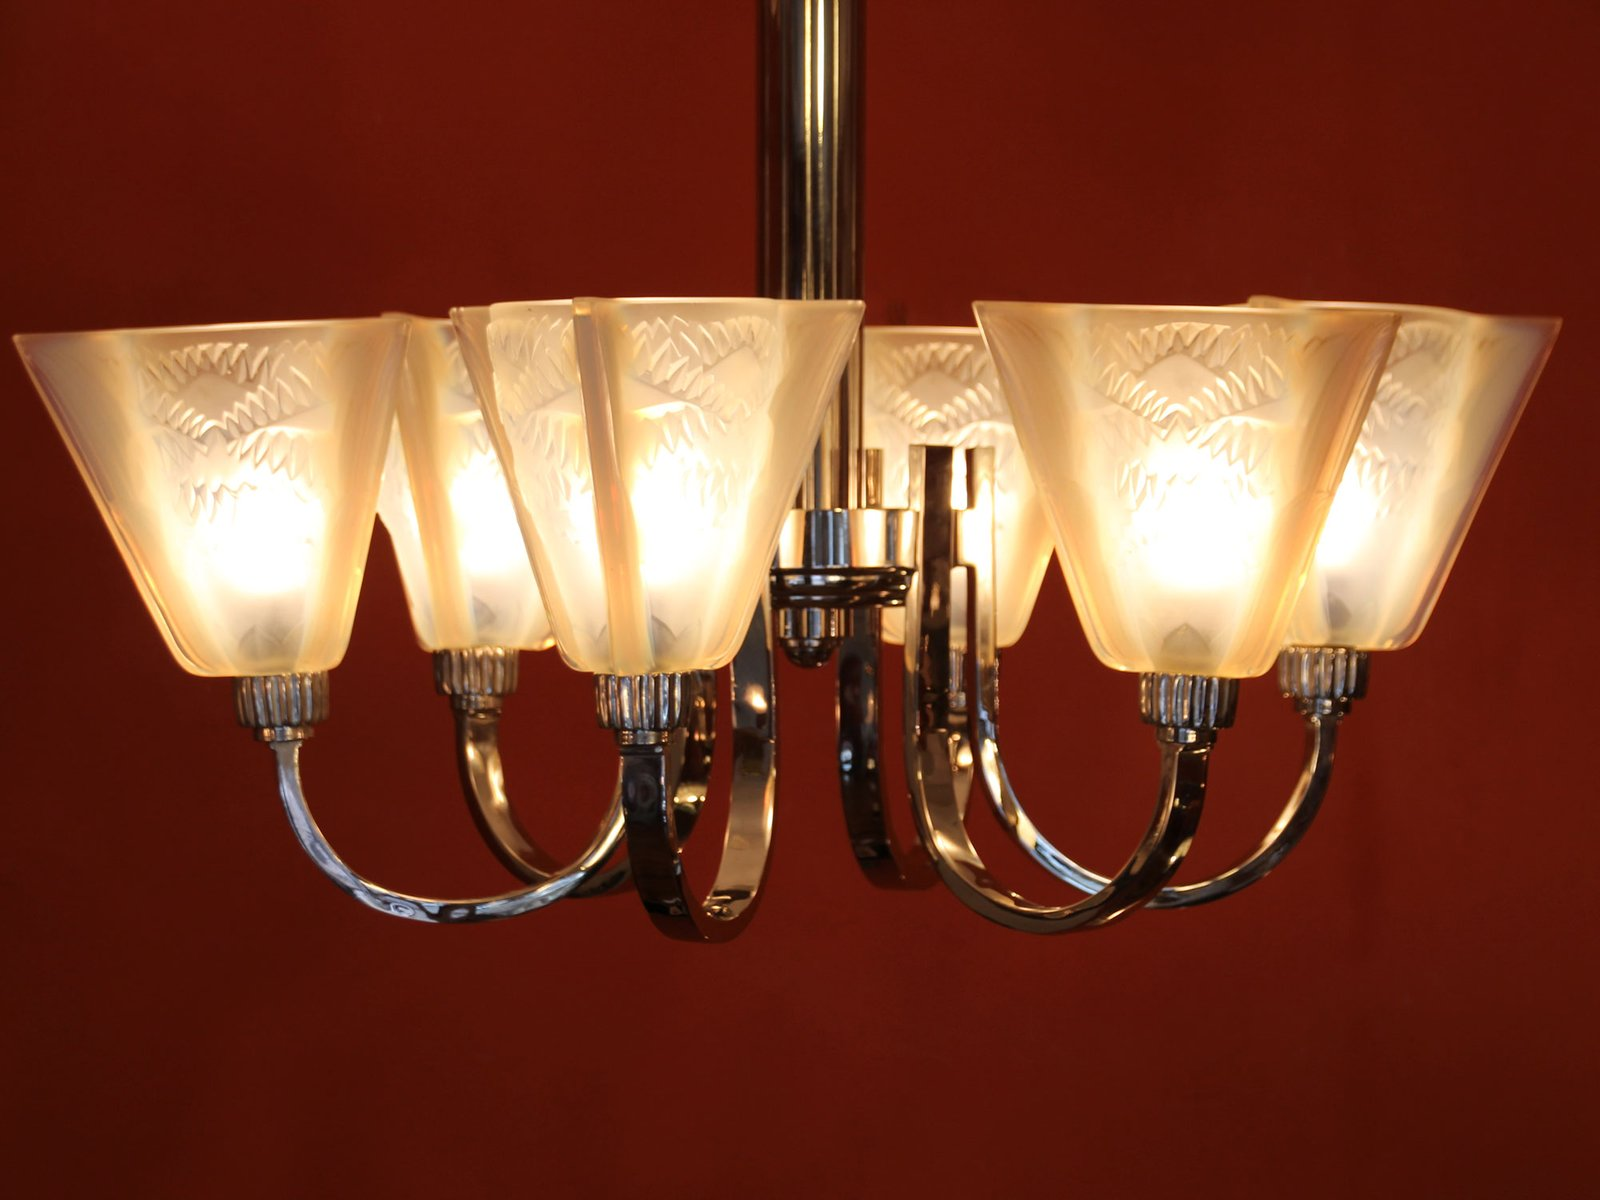 Art Deco Ceiling Light With 6 Arms And Opaline Glass Tulip Shades From Petitot For Sale At Pamono